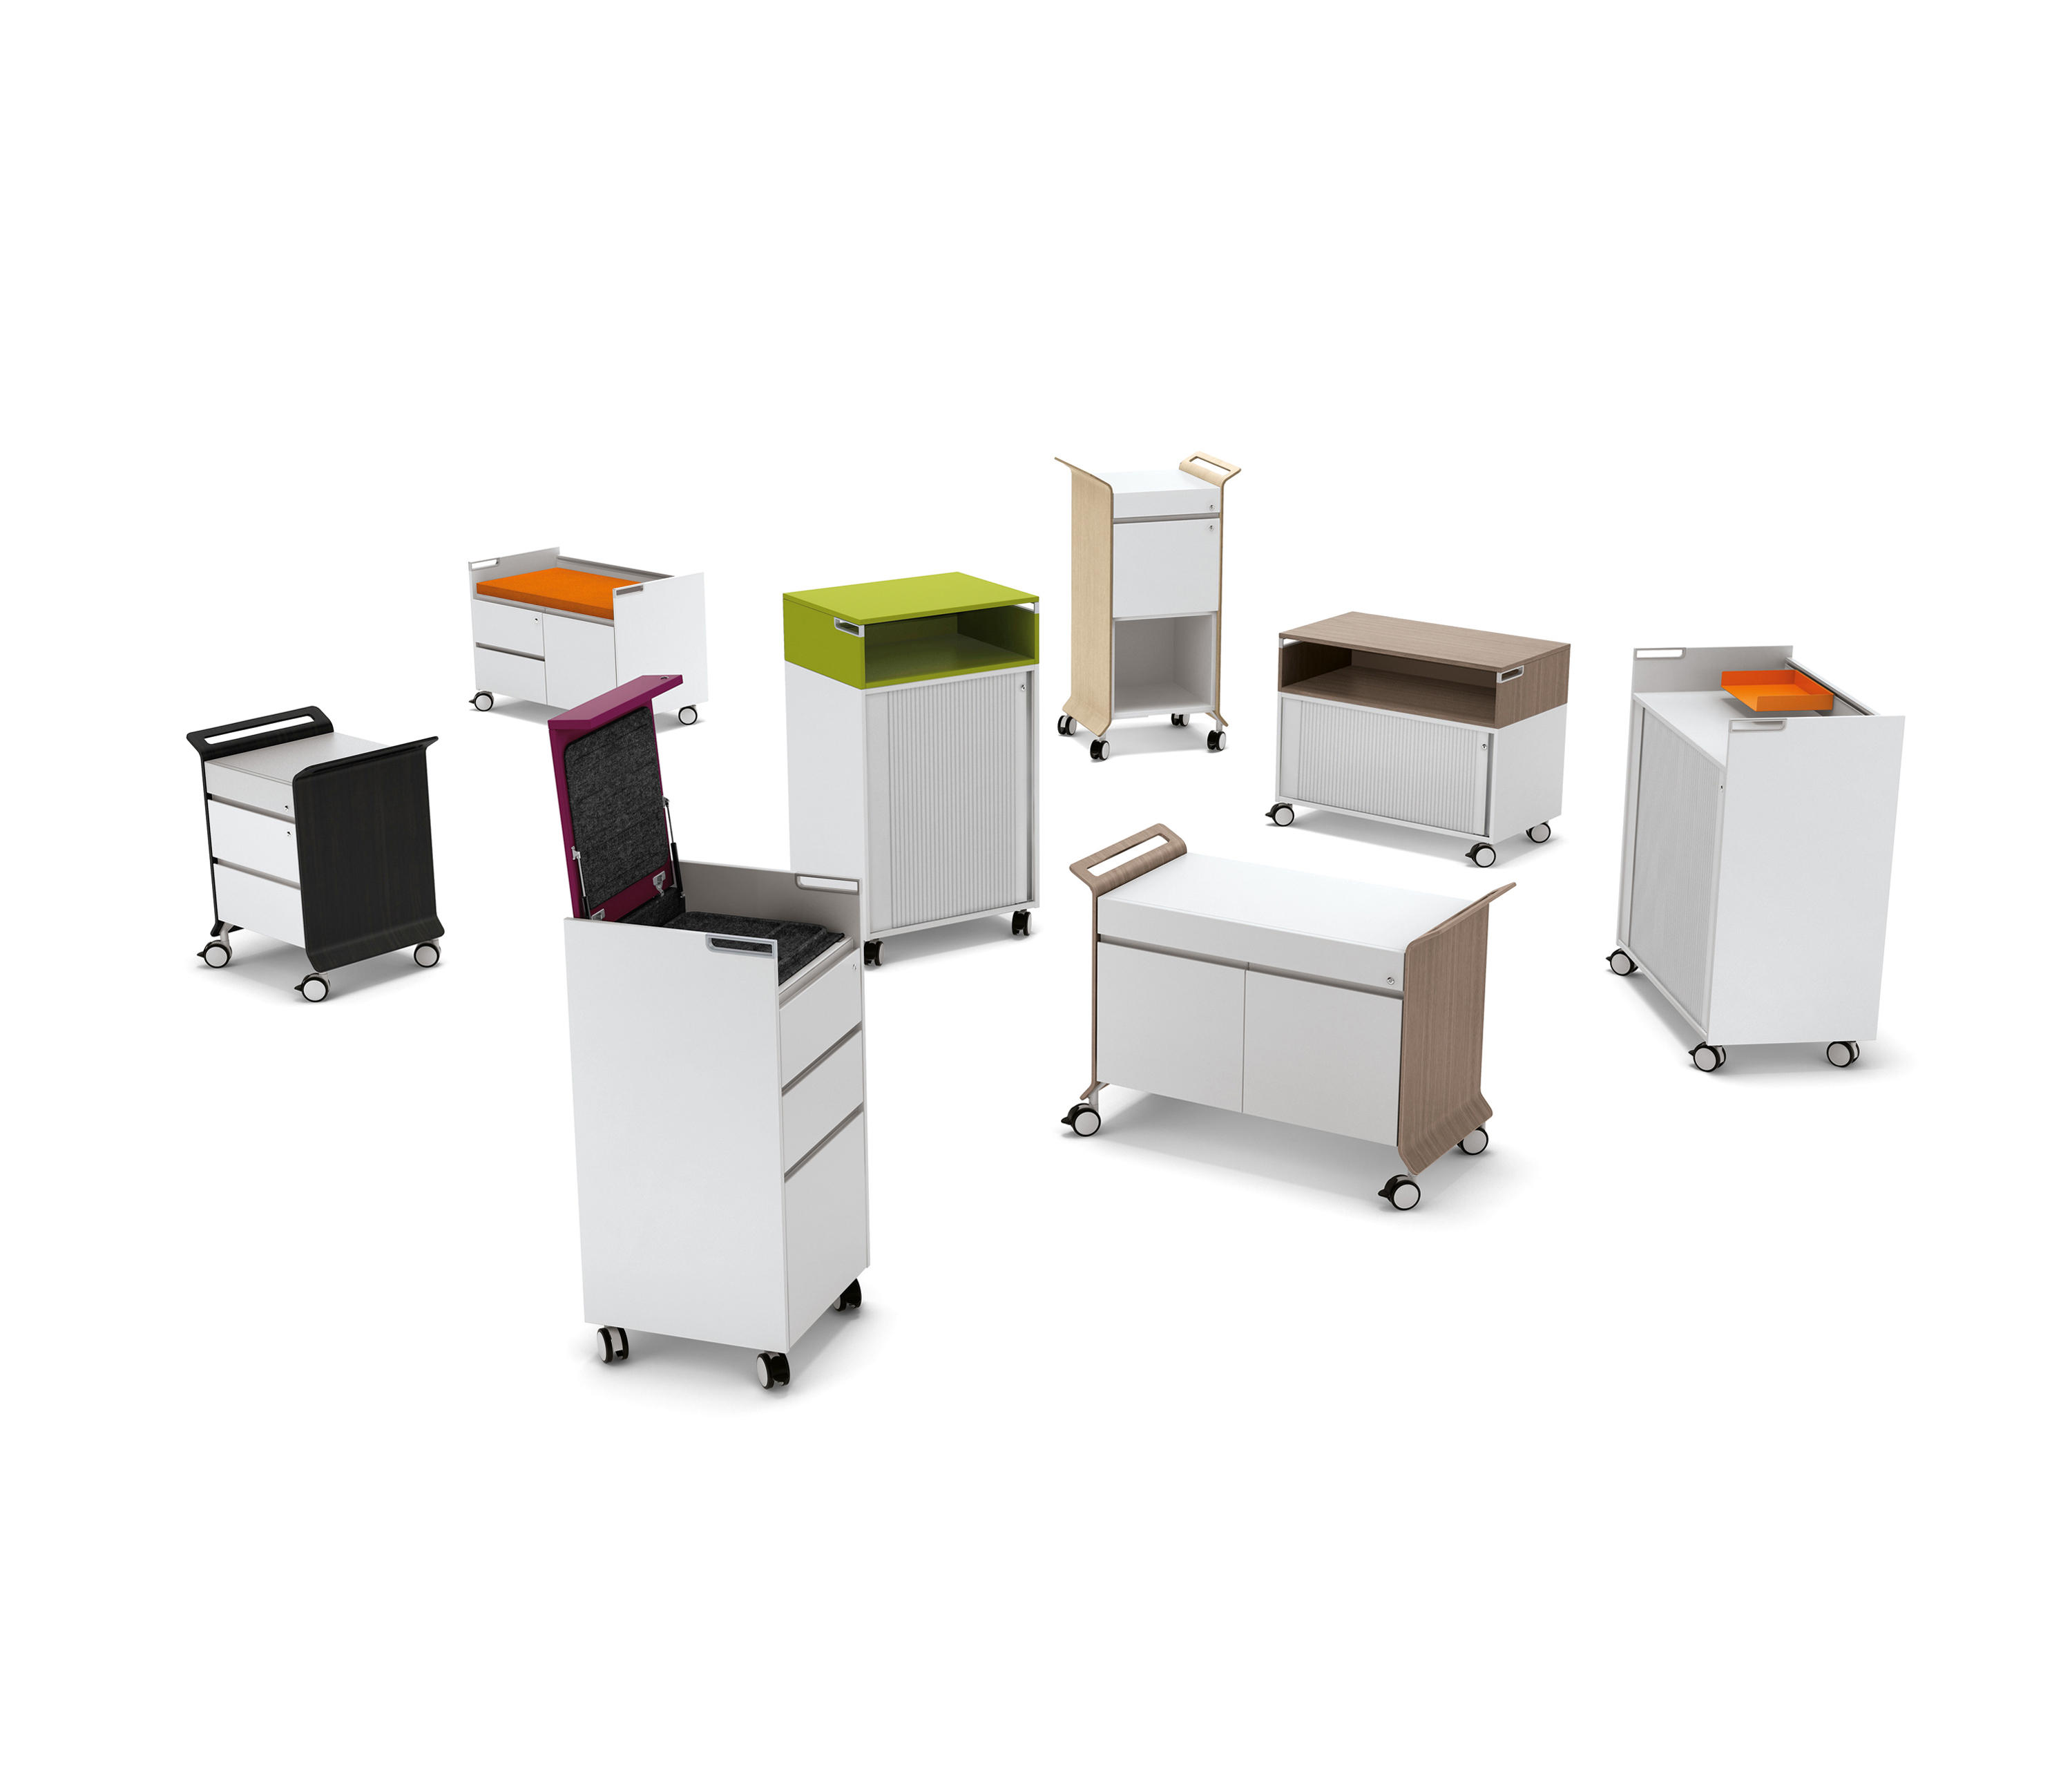 MEDIA   CADDY - Lecterns from Bene   Architonic